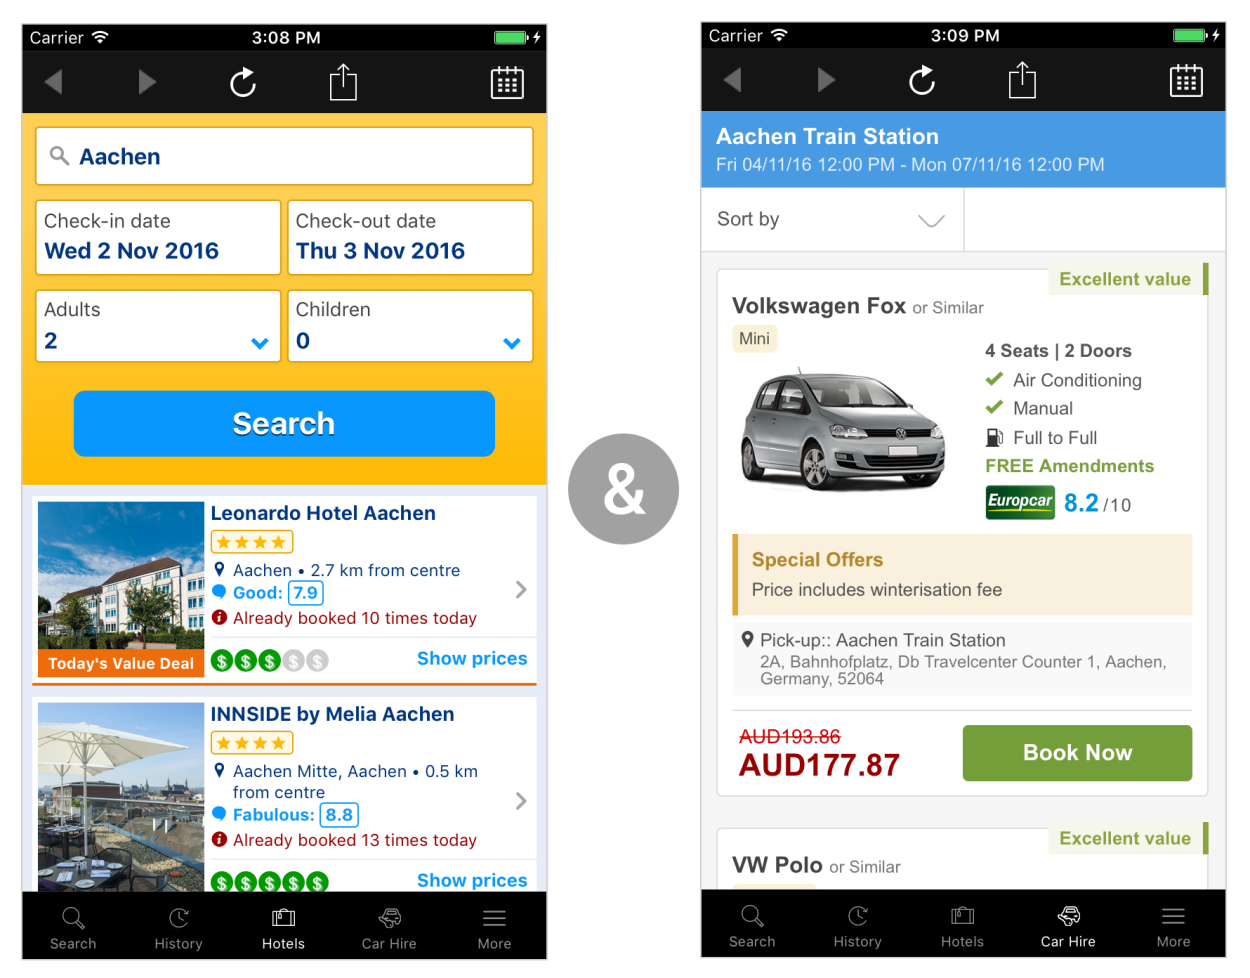 Rome2rio hotels and cars in iOS app